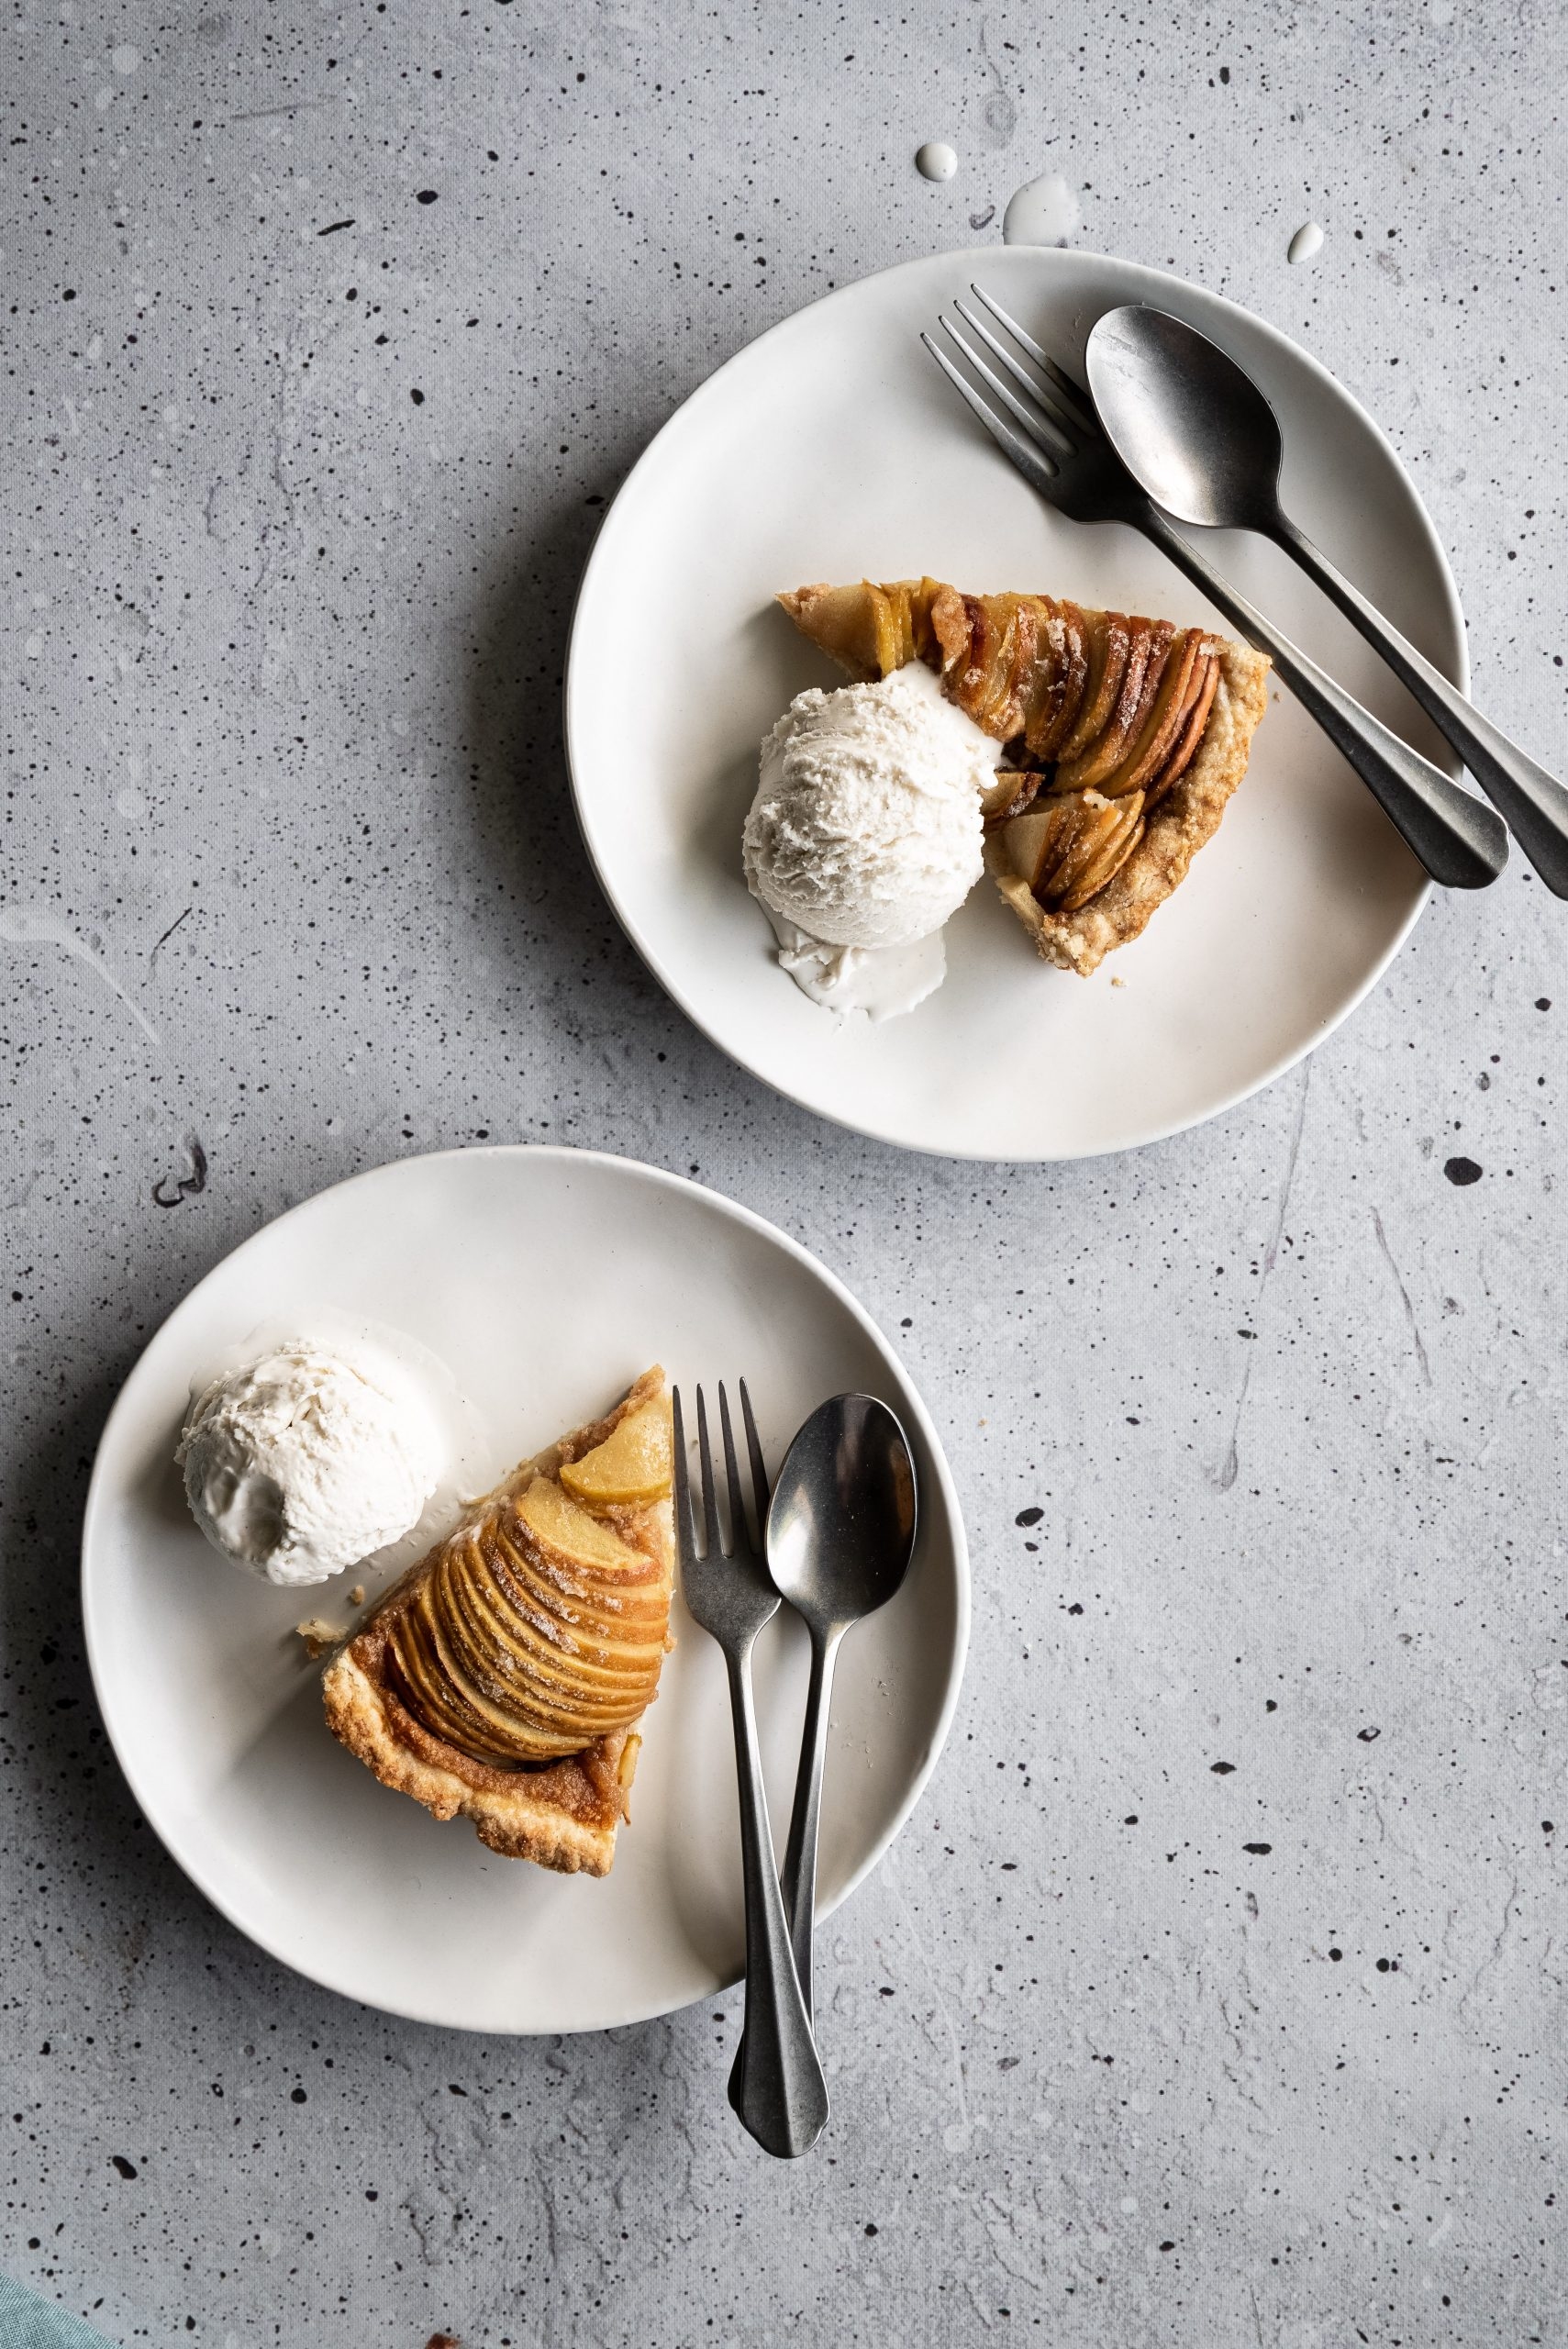 overhead image of two white plates with apple tart slices, ice cream and cutlery.